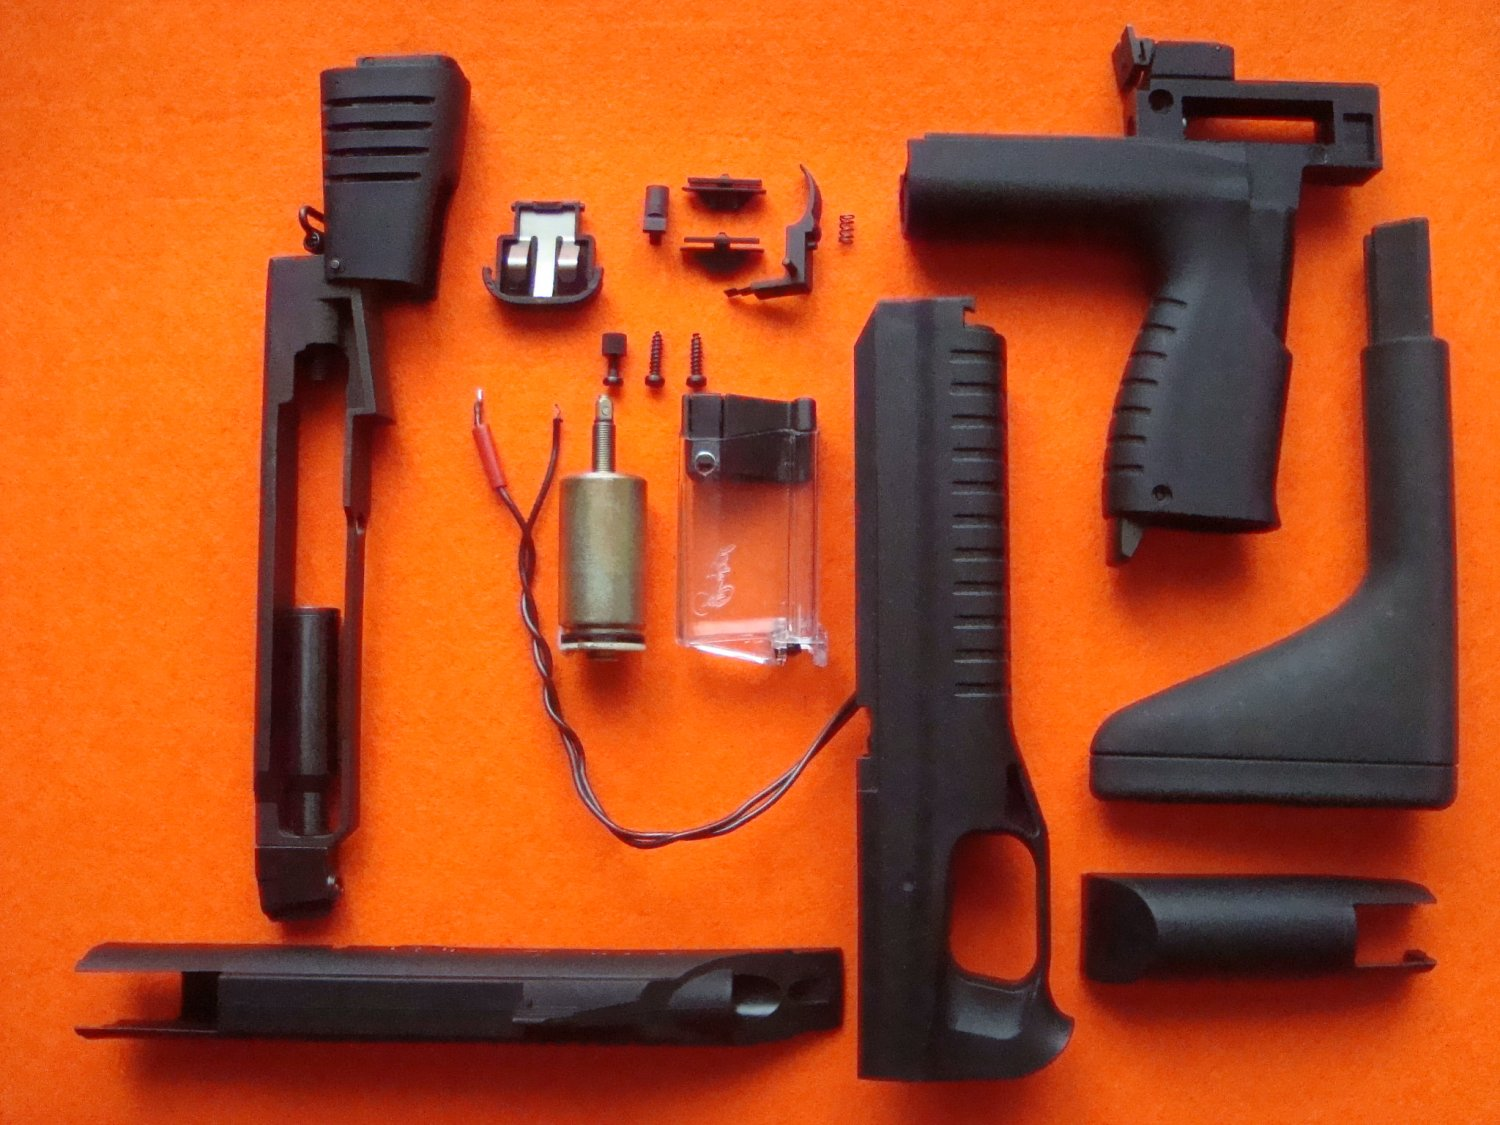 MP-661K Drozd repair set with updated magazine, tuned parts for power upgrade, details made to order